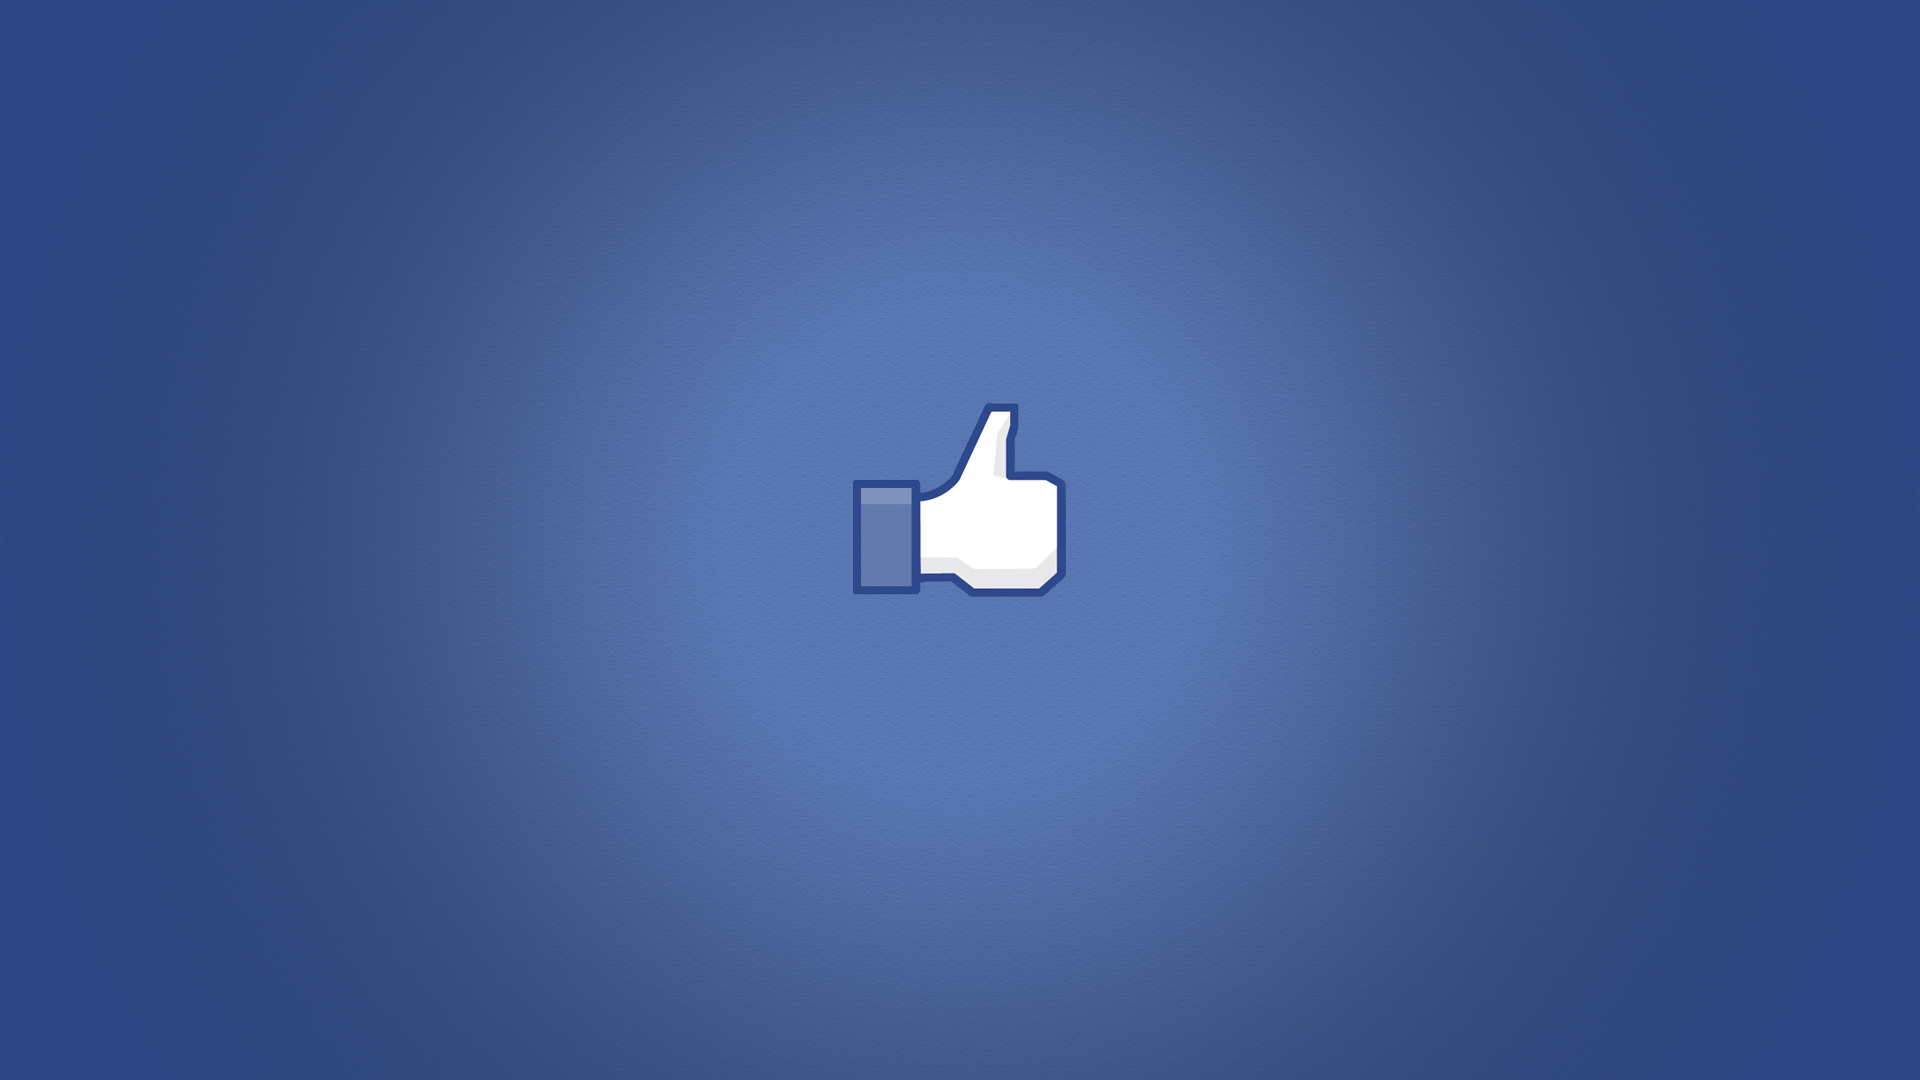 Facebook Full HD Wallpaper And Background Image